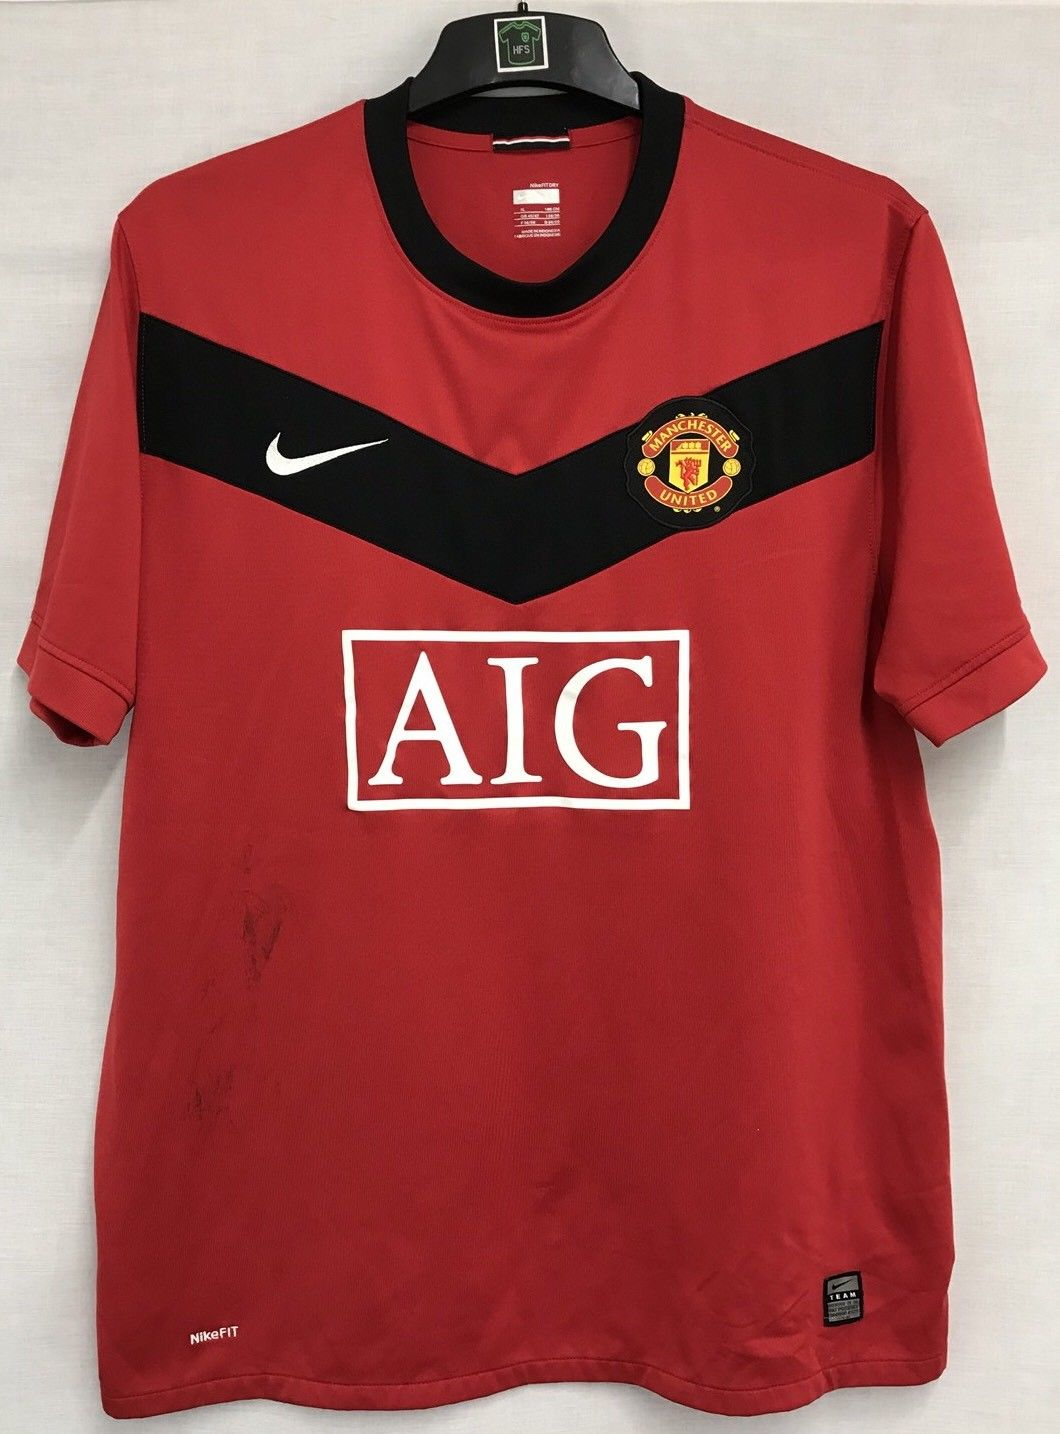 All items are carefully described but. Manchester United Eric Cantona 7 Football Shirt 2009 10 Adults Xl Nike A527 Historic Football Shirts